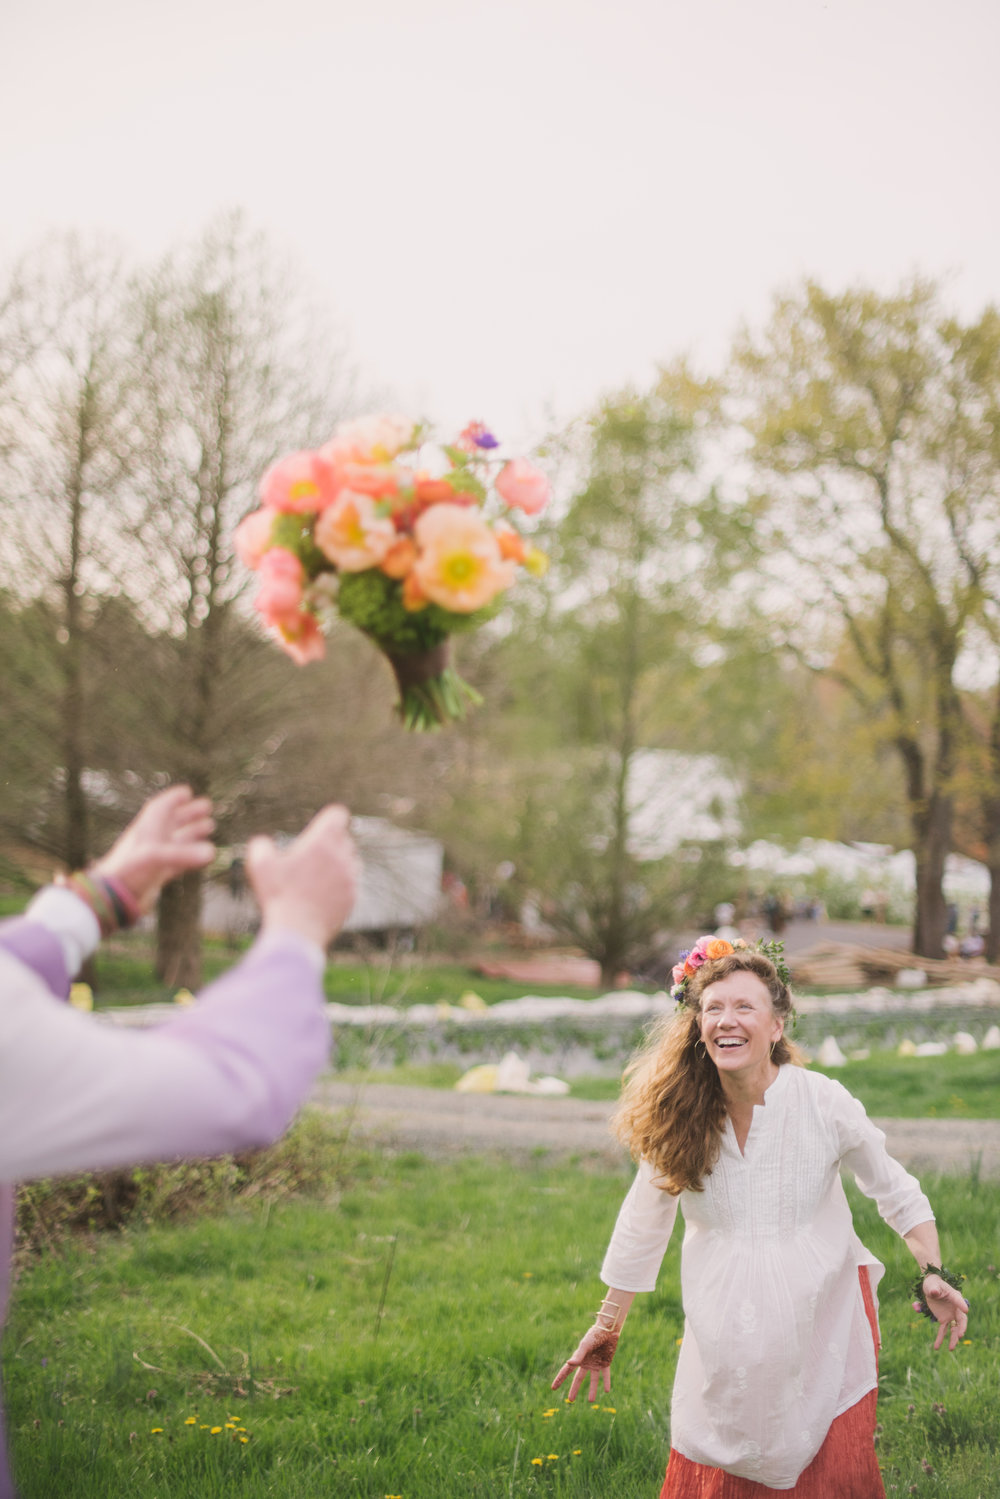 anne_throwing_flowers.jpg